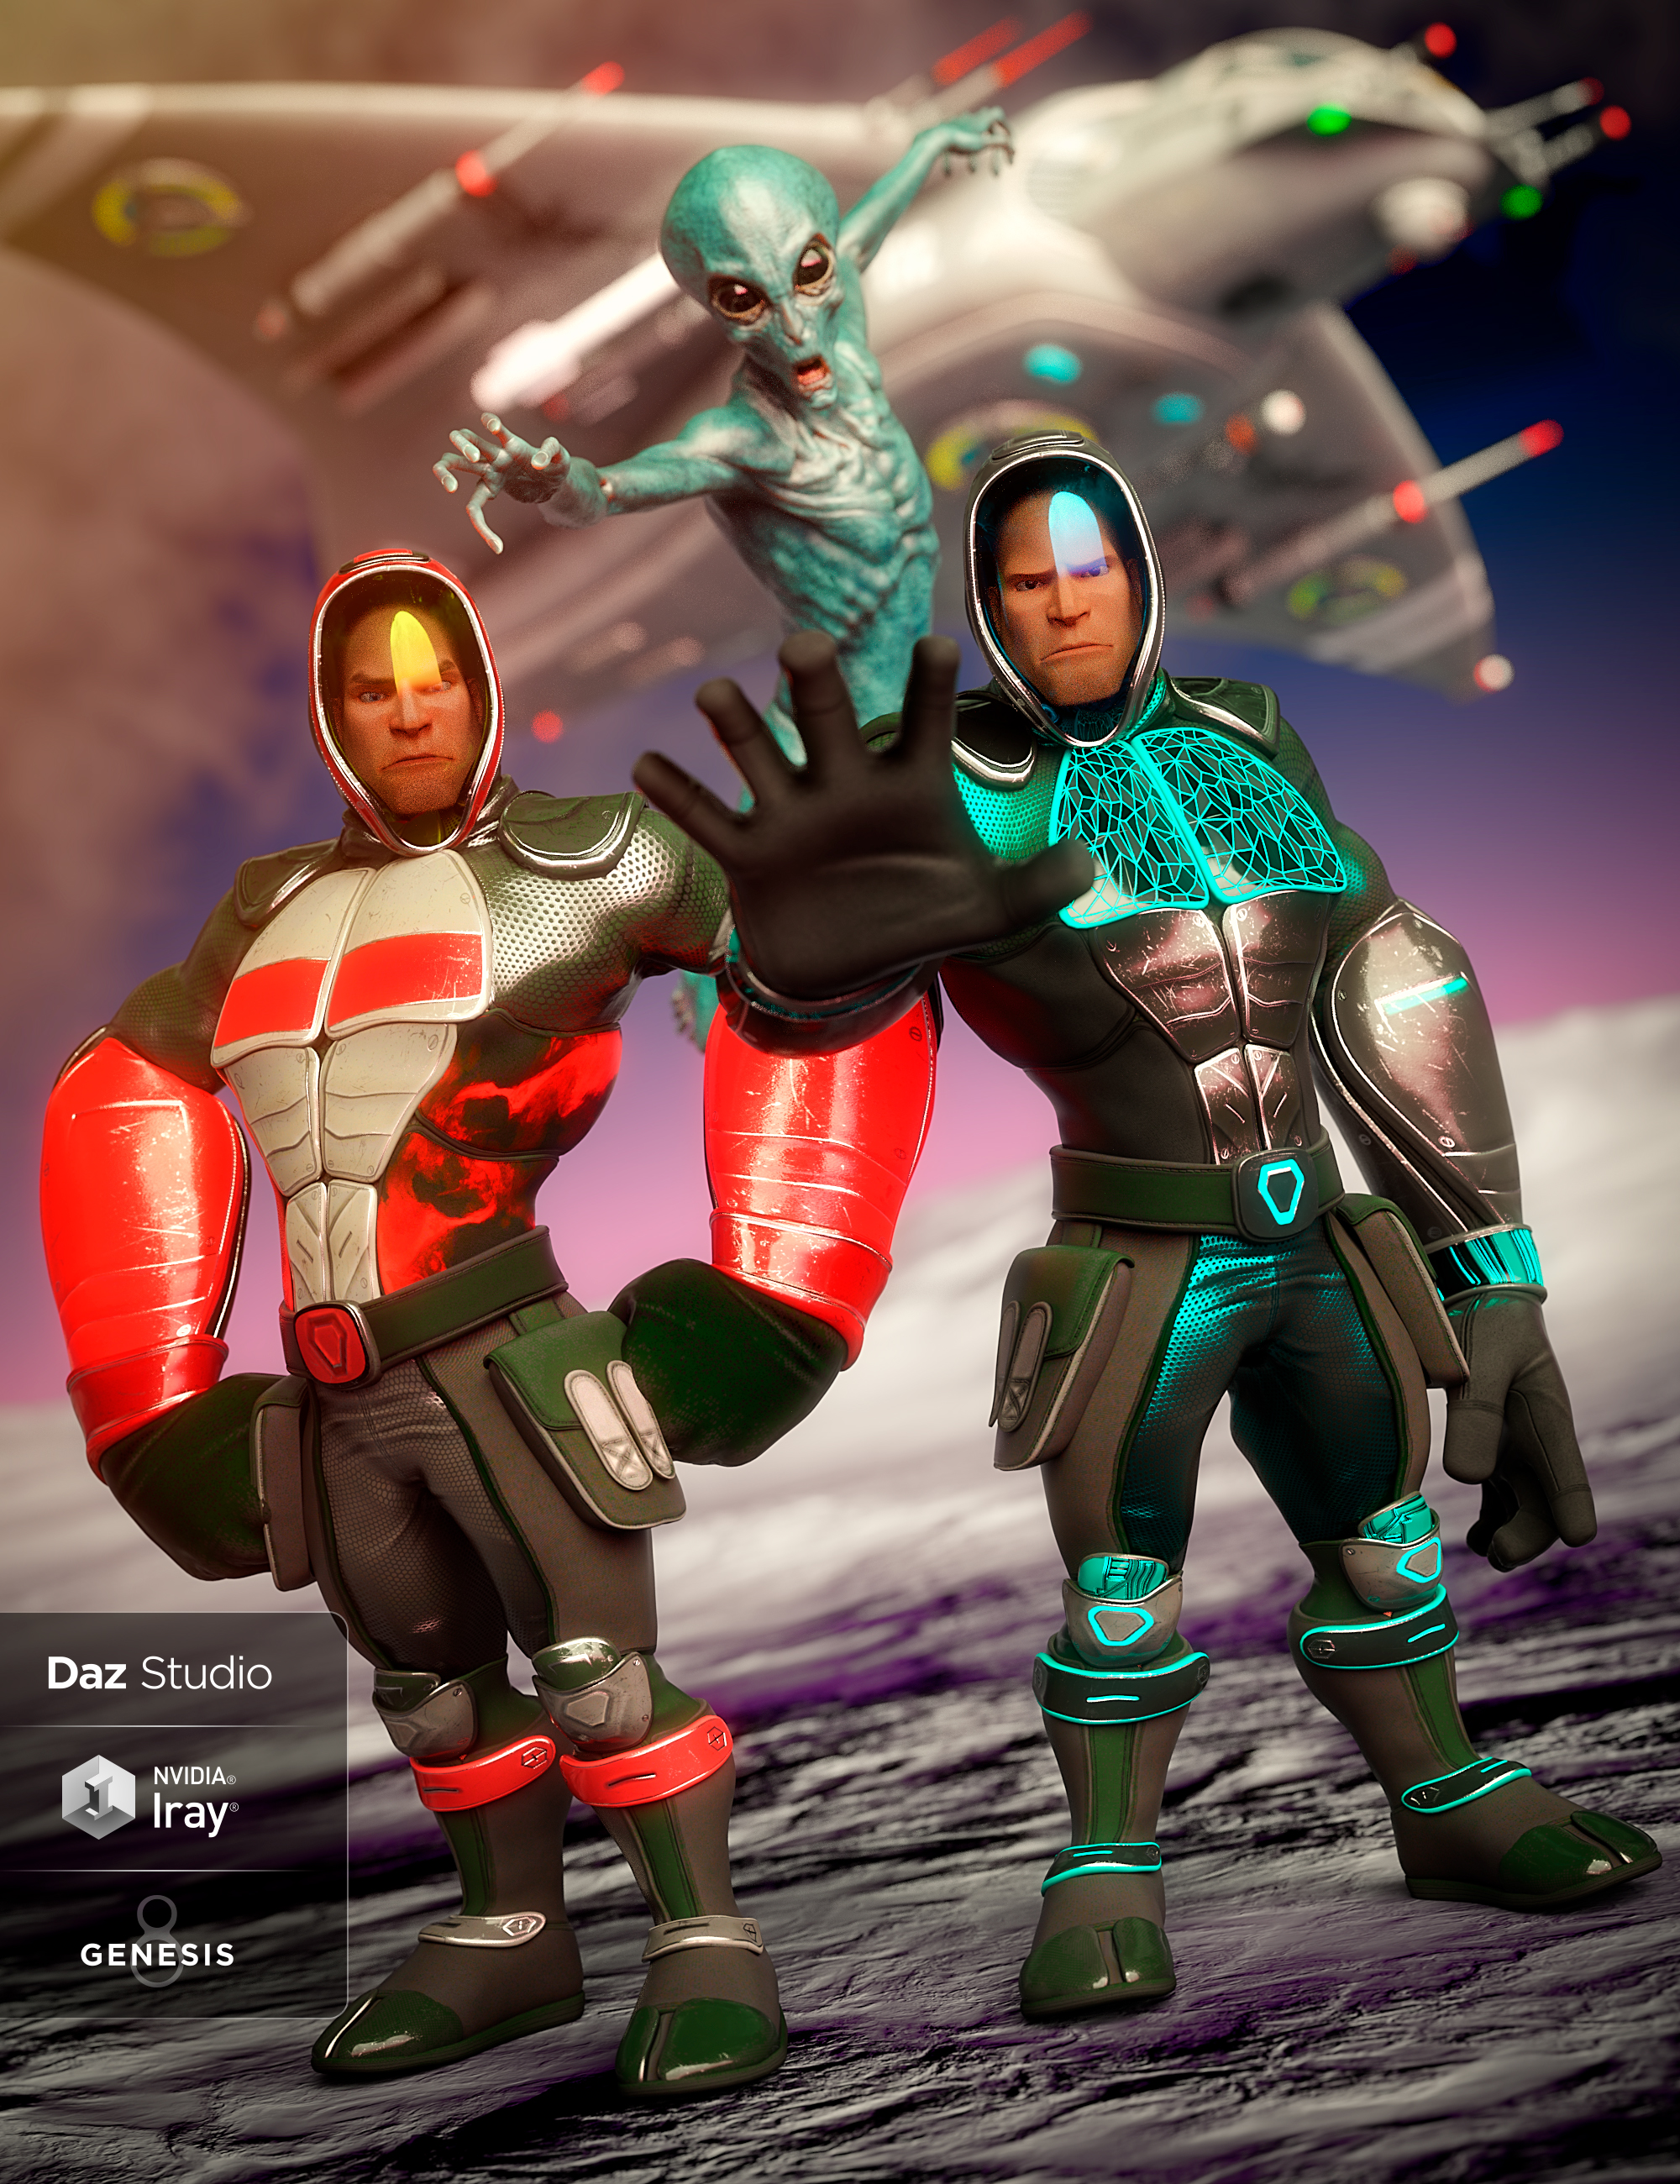 Sci-fi Ninja Outfit Textures by: Demian, 3D Models by Daz 3D